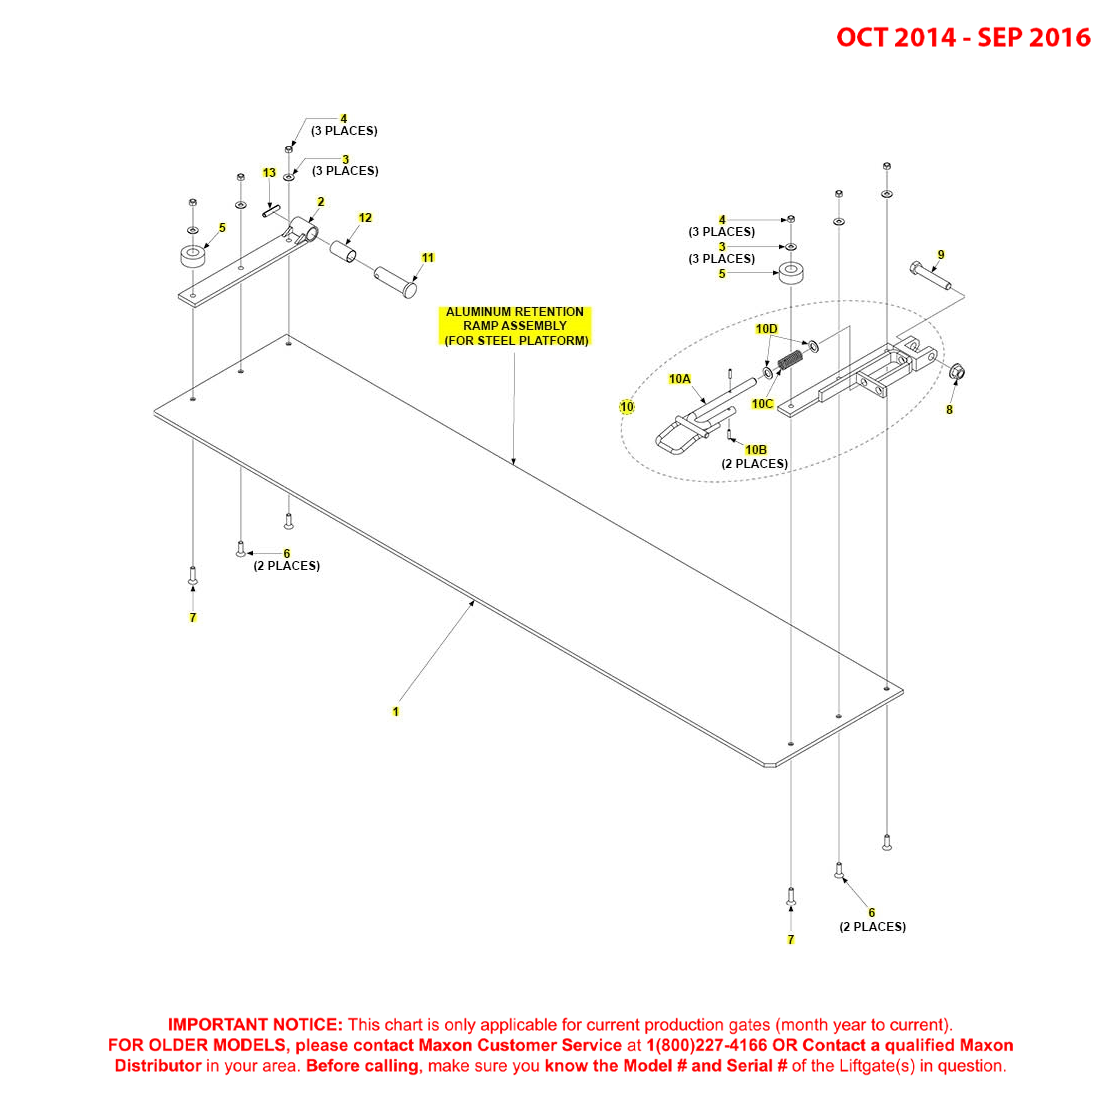 BMR (Oct 2014 - Sep 2016) Aluminum Retention Ramp Assembly For Steel Platform